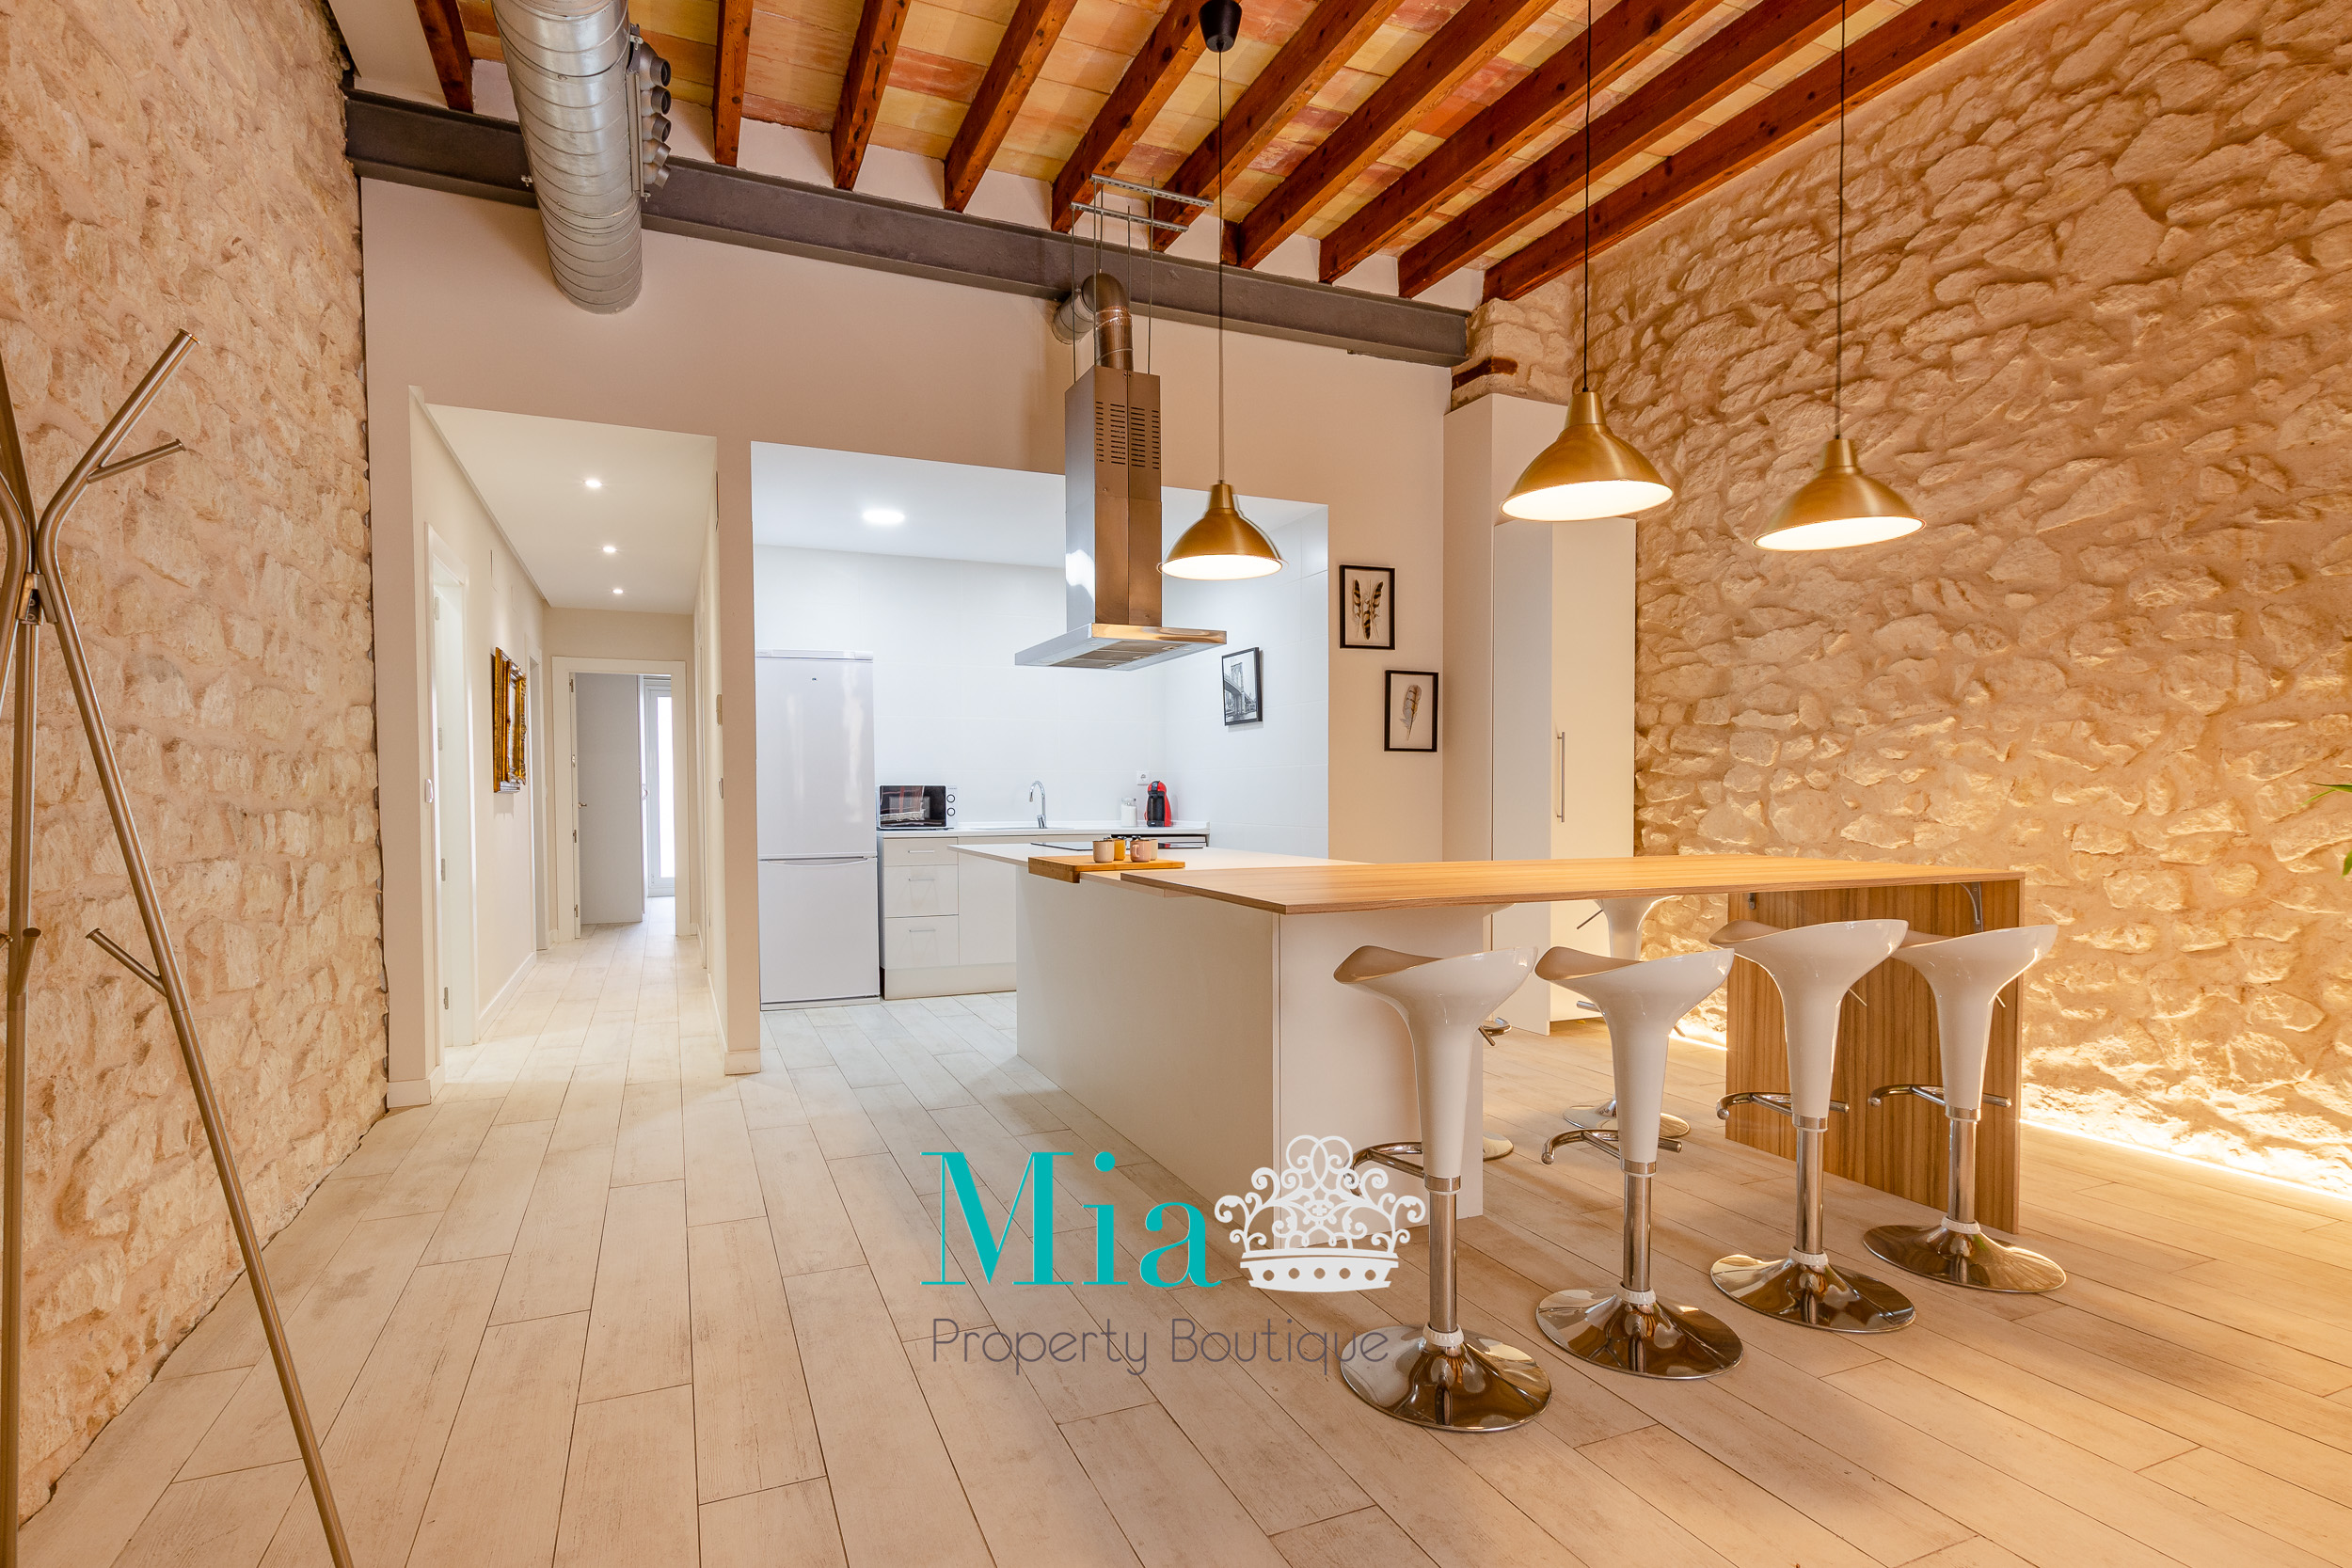 Chic Apartment for Rent, Alicante City